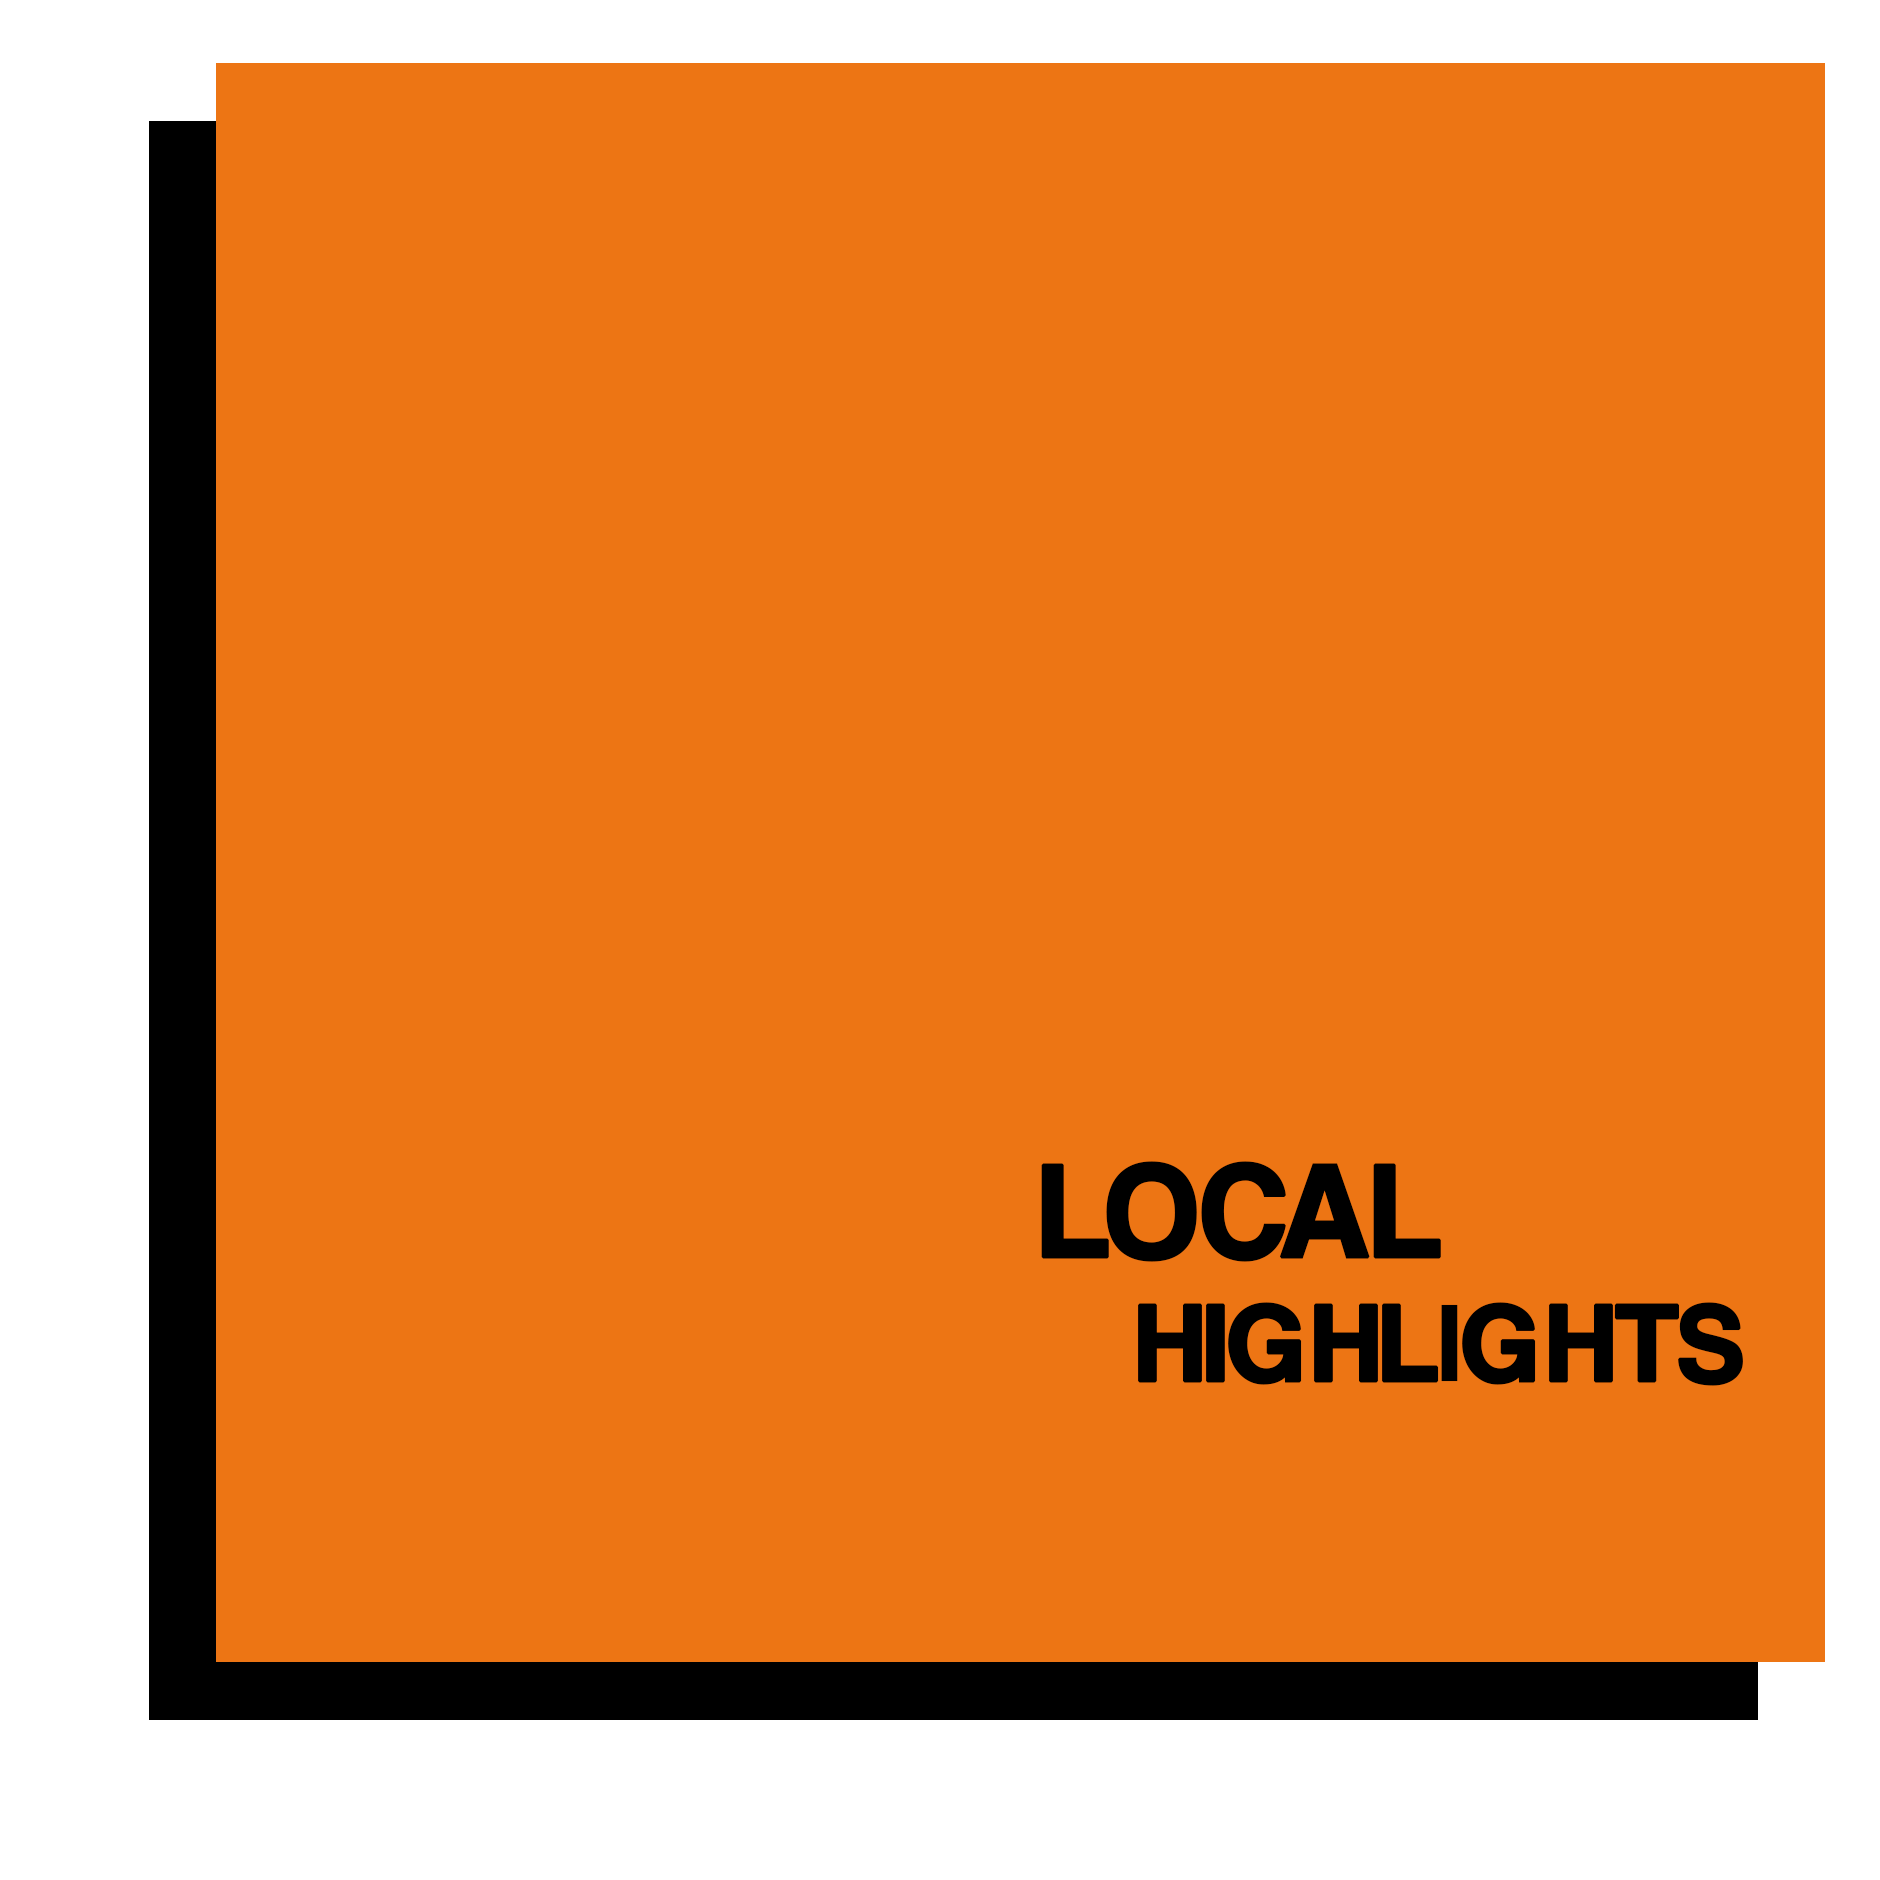 LOCALHIGHLIGHTS.png